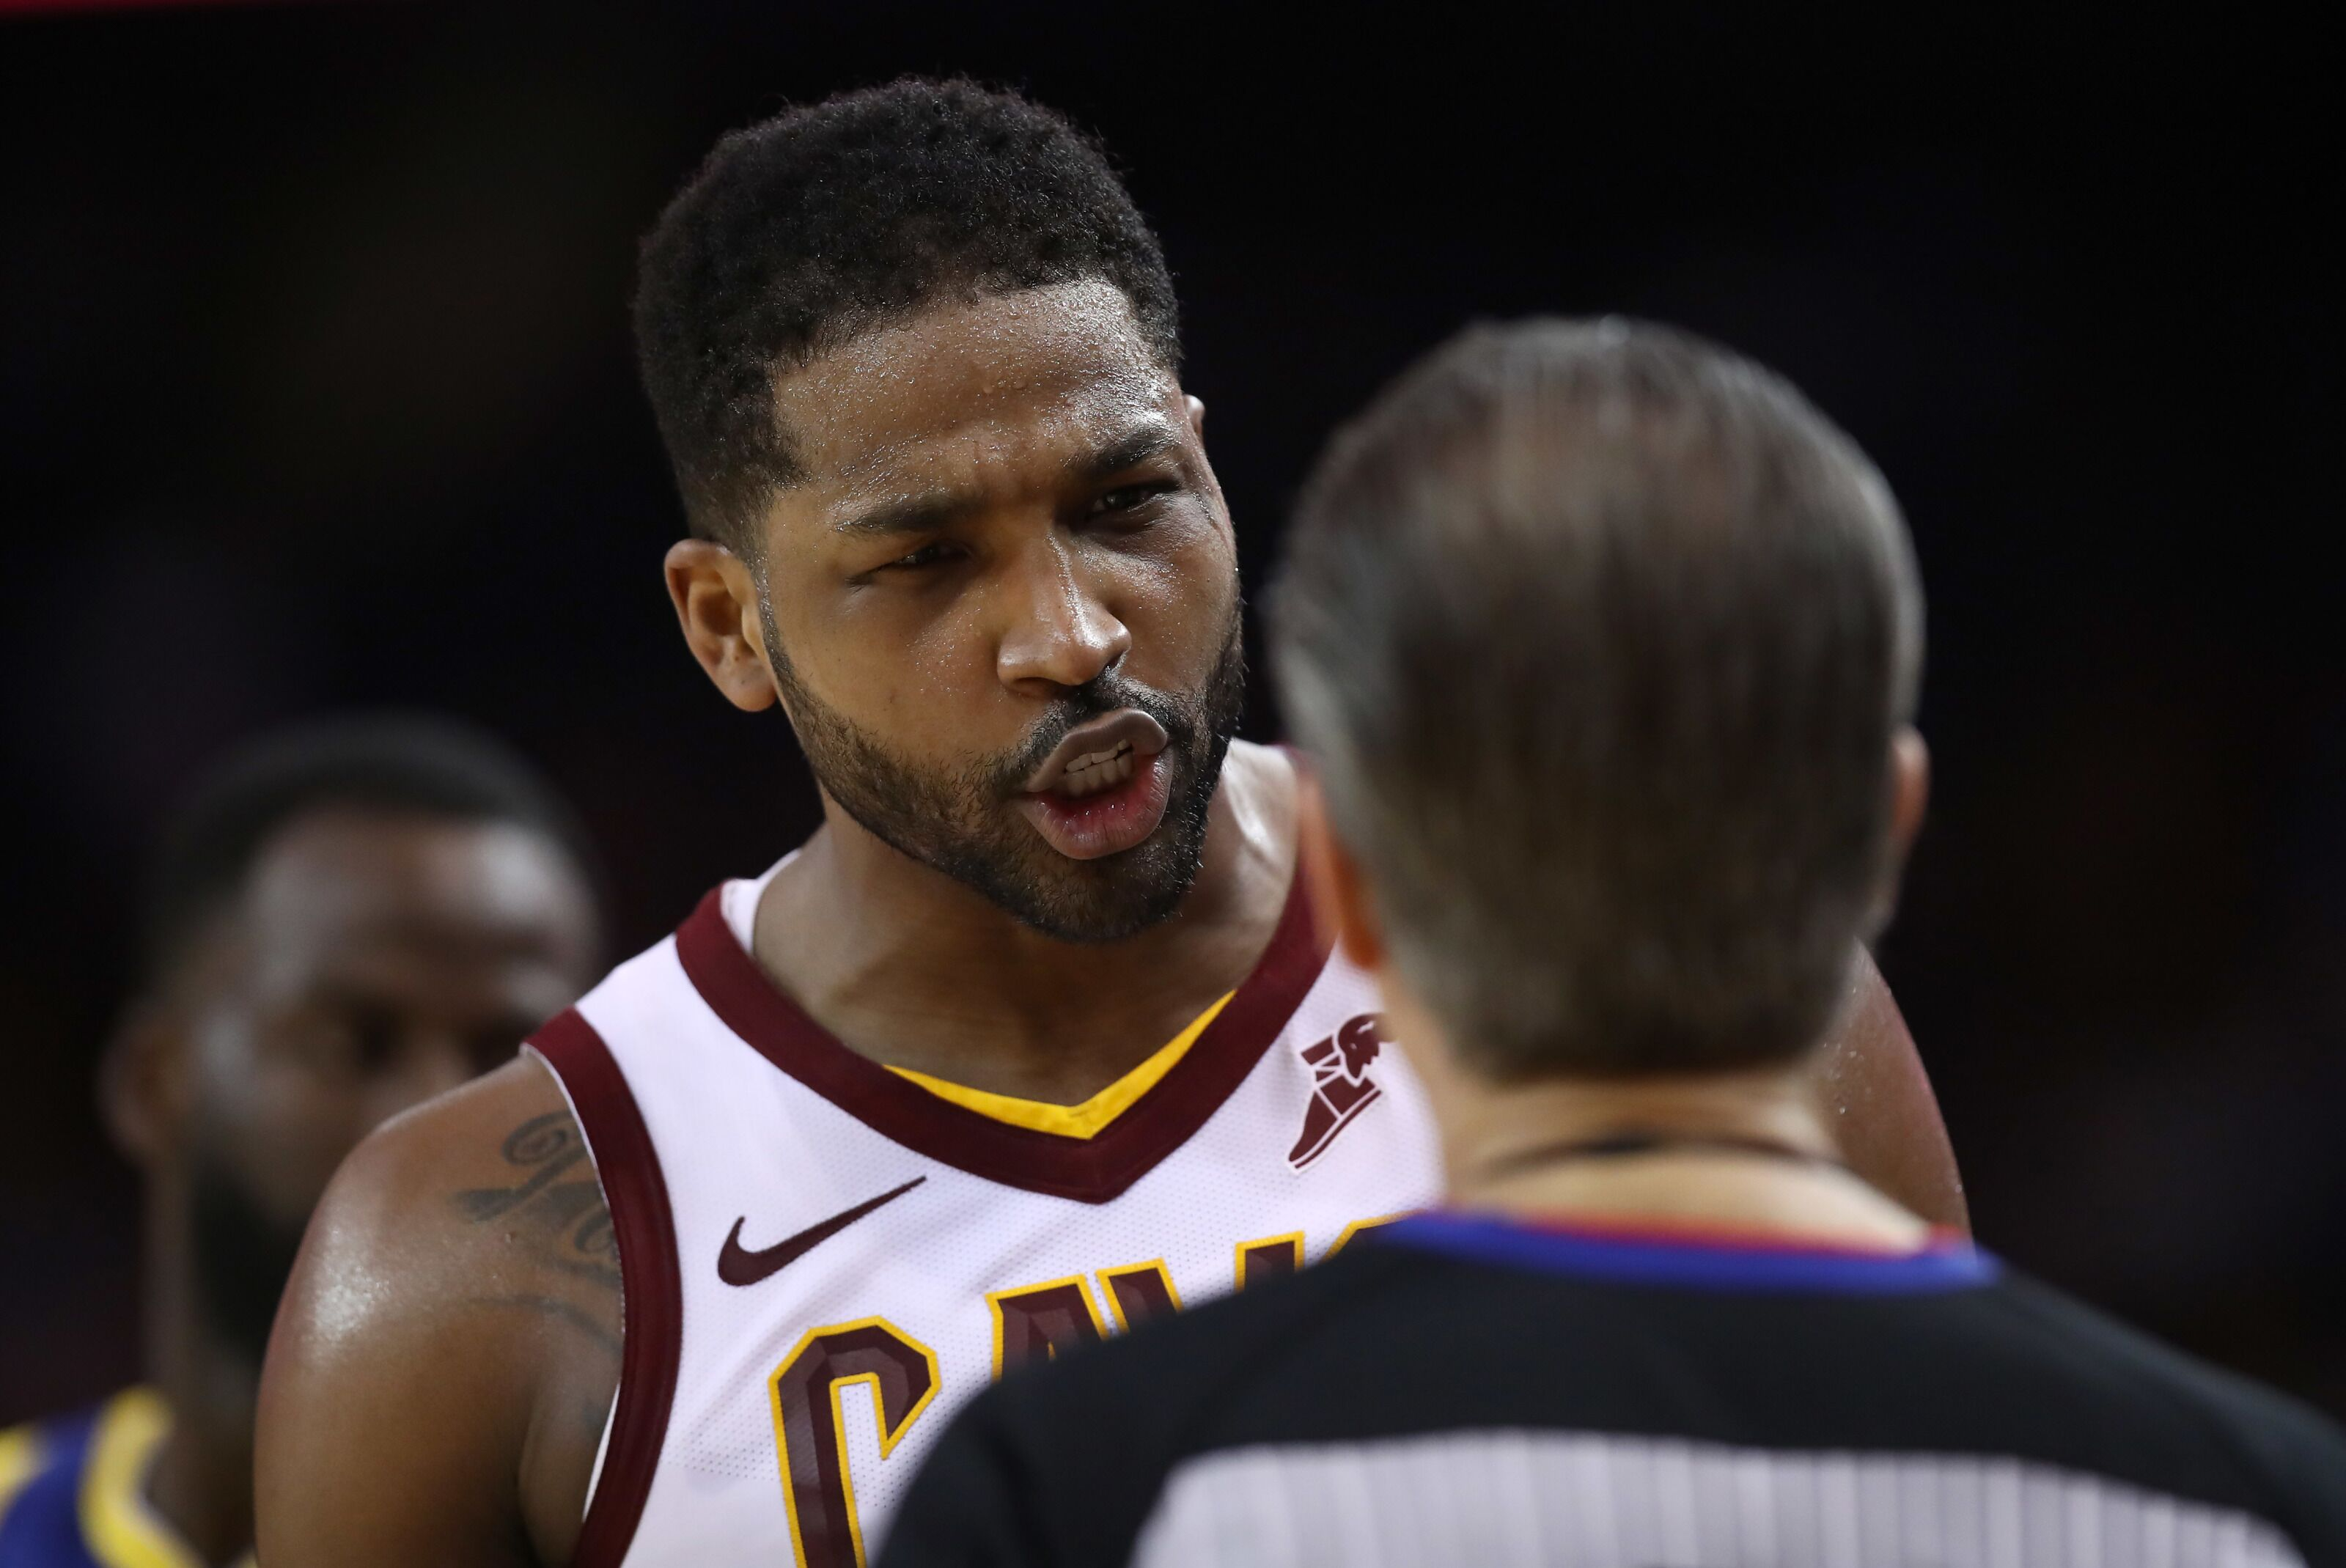 Cleveland Cavaliers considered trade of Tristan Thompson, Jordan Clarkson